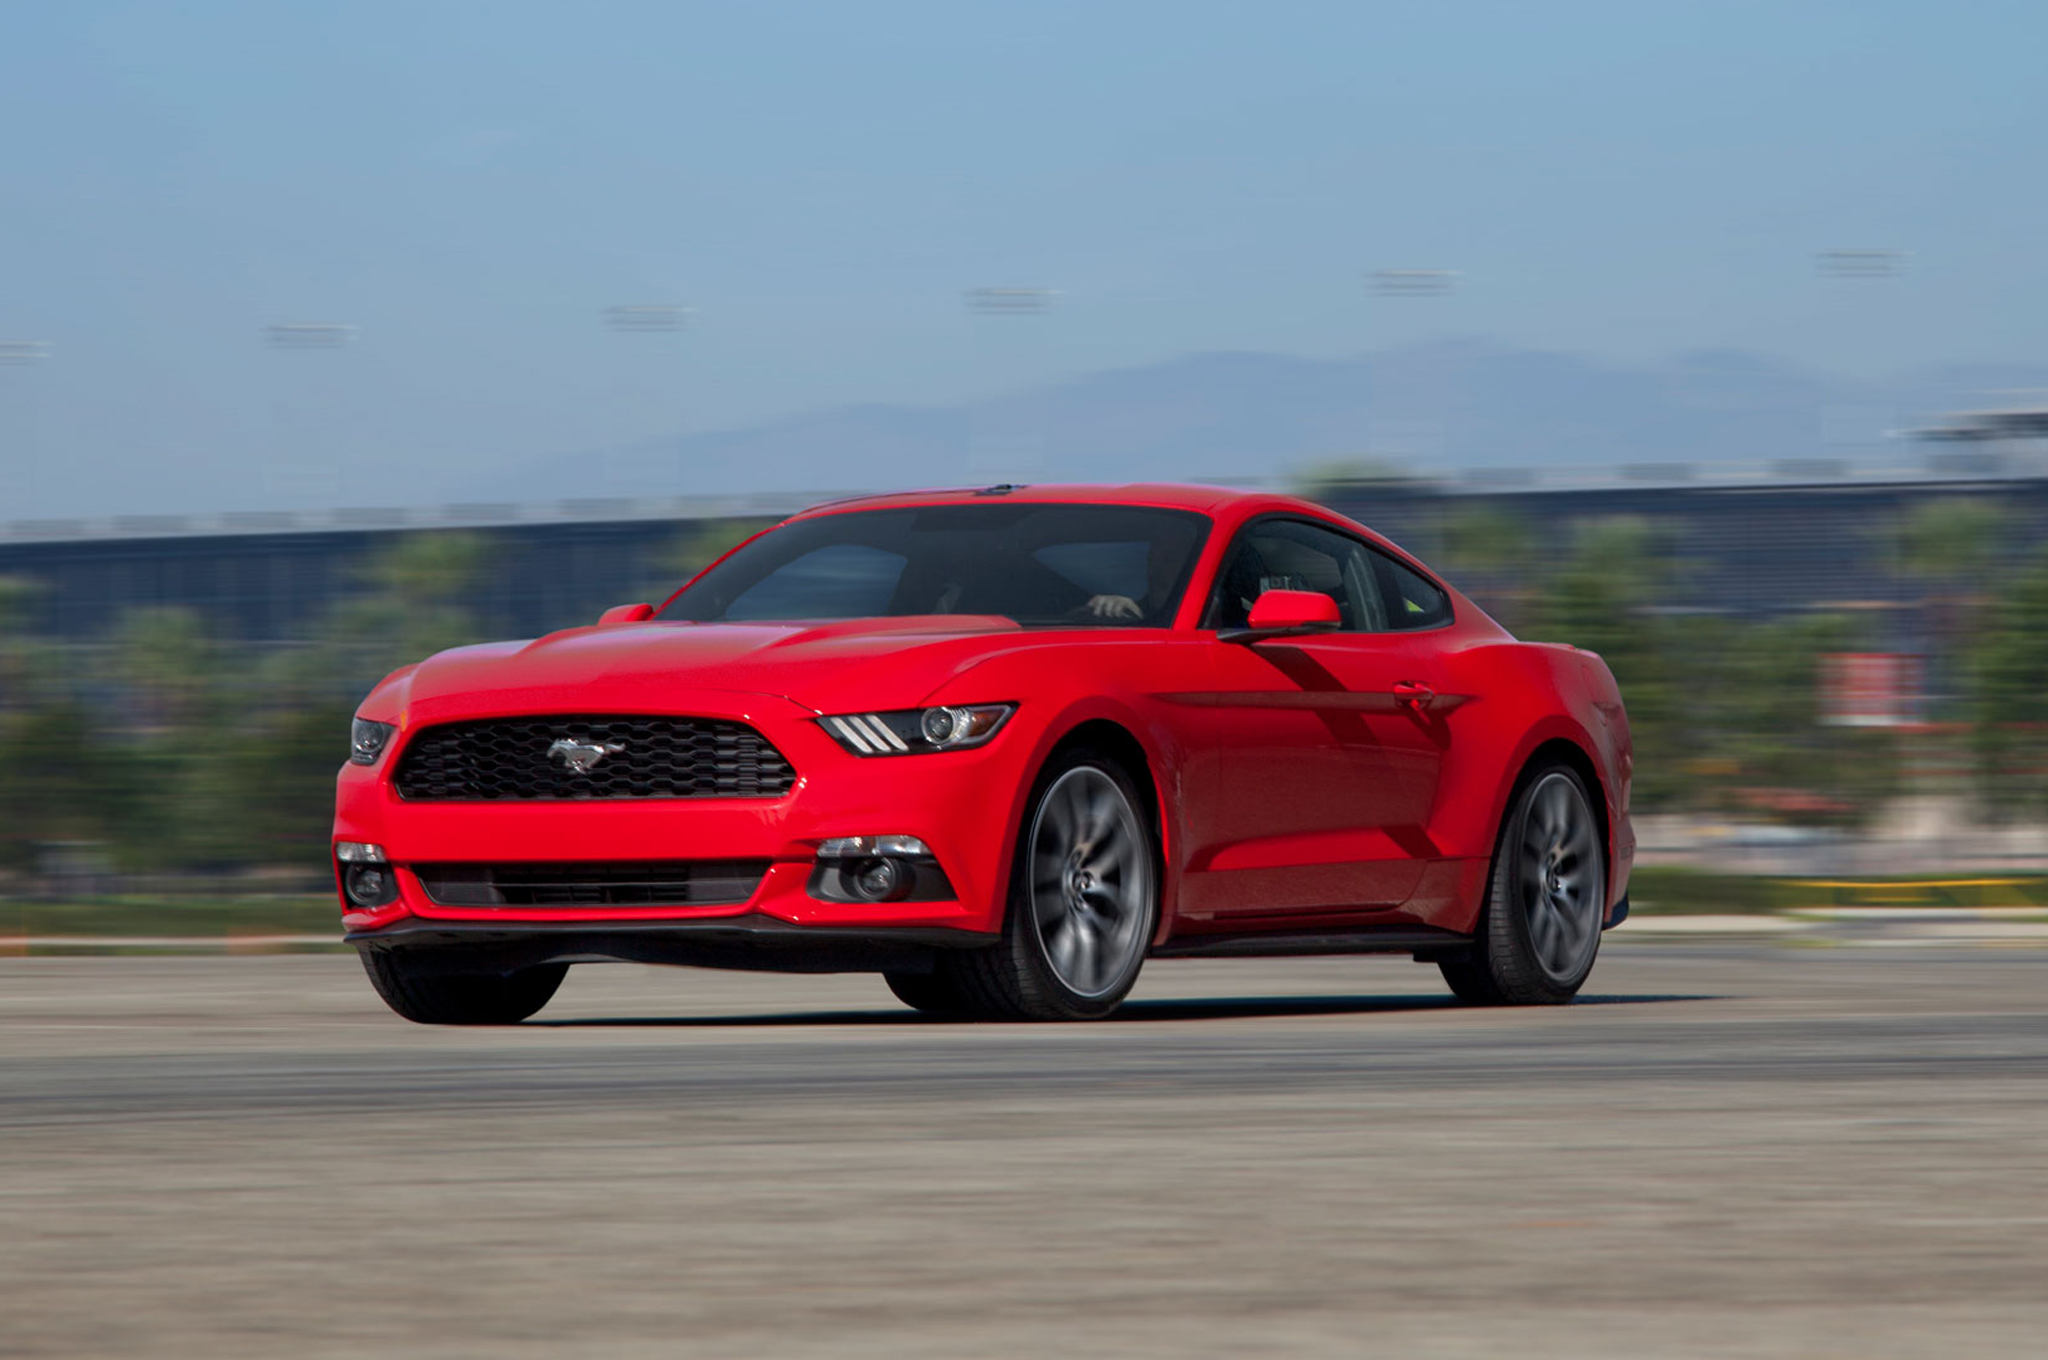 2015 Ford Mustang Ecoboost 2 3 Manual First Test Motortrend